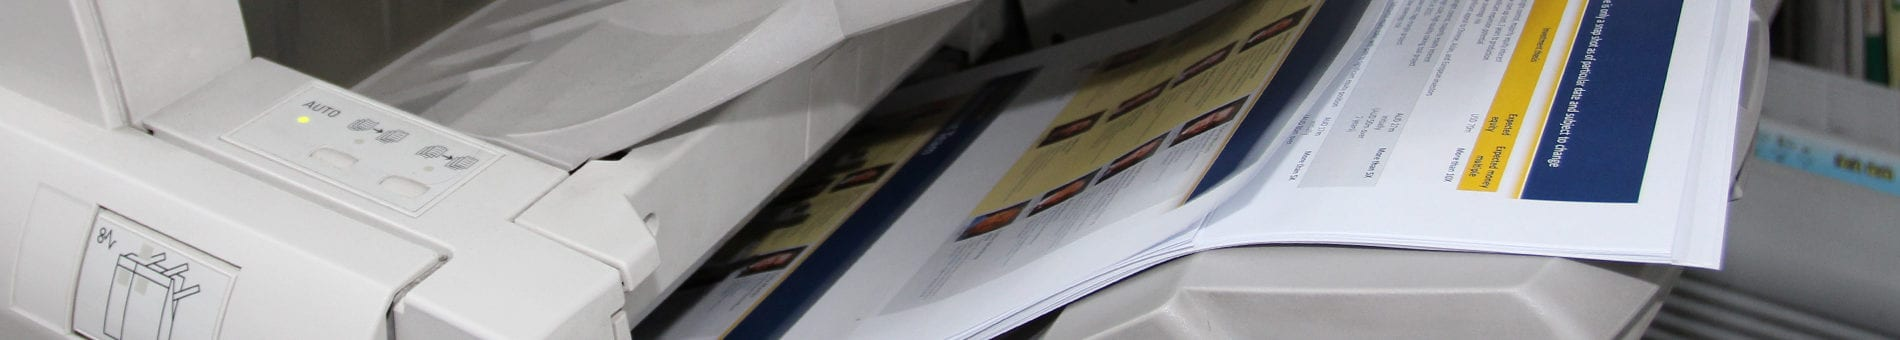 Annual Reports & Report Printing